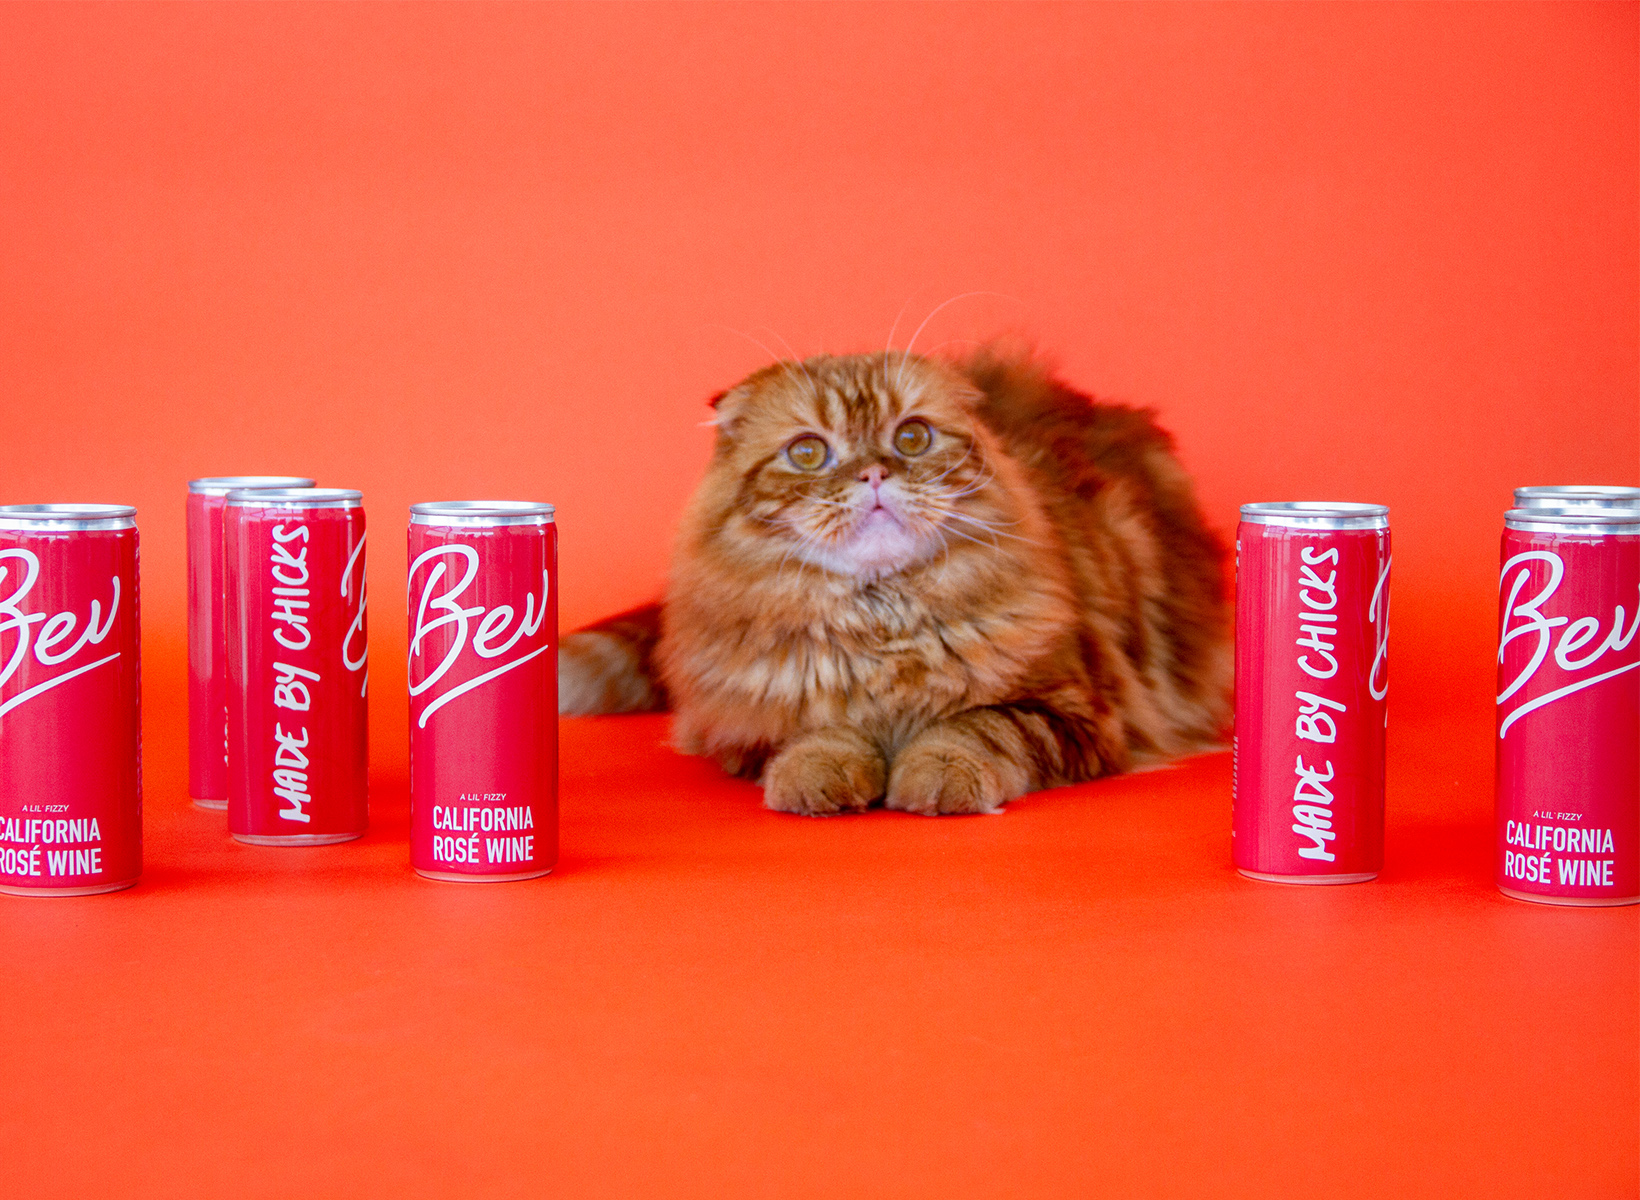 An orange cat sitting in between red cans of Bev against an orange background